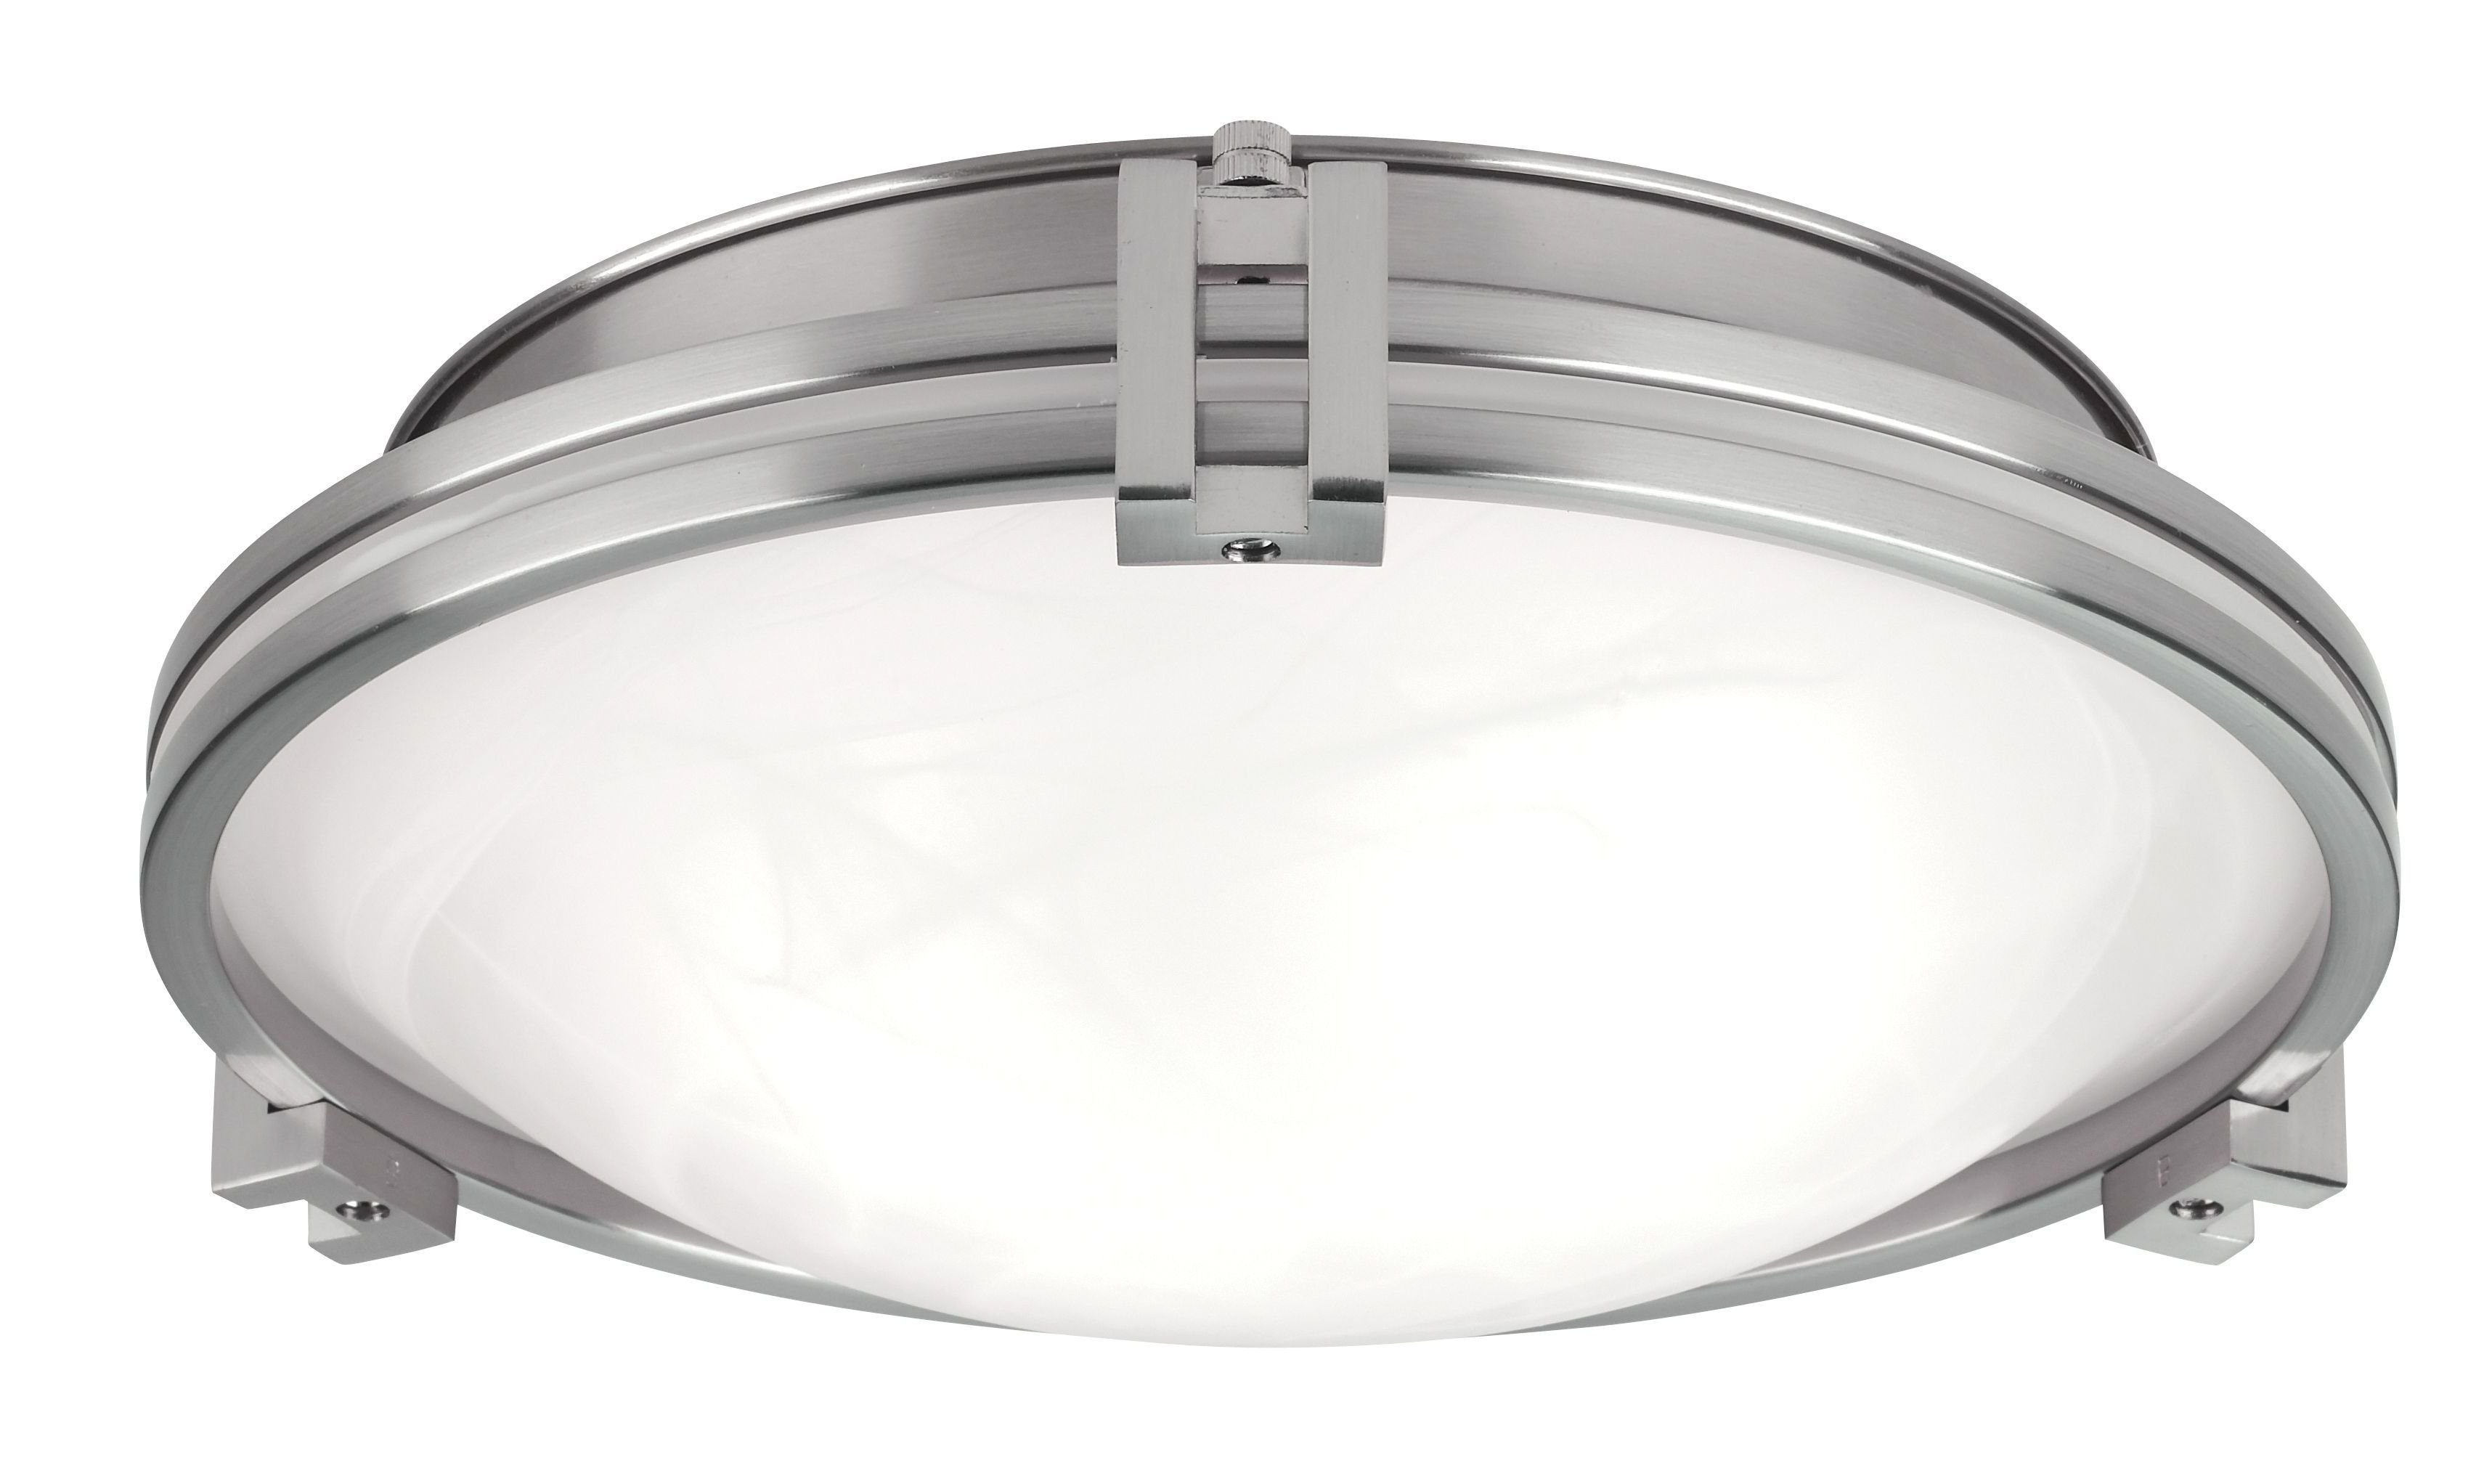 Replacement Bathroom Light Covers Interesting Ceiling Fan